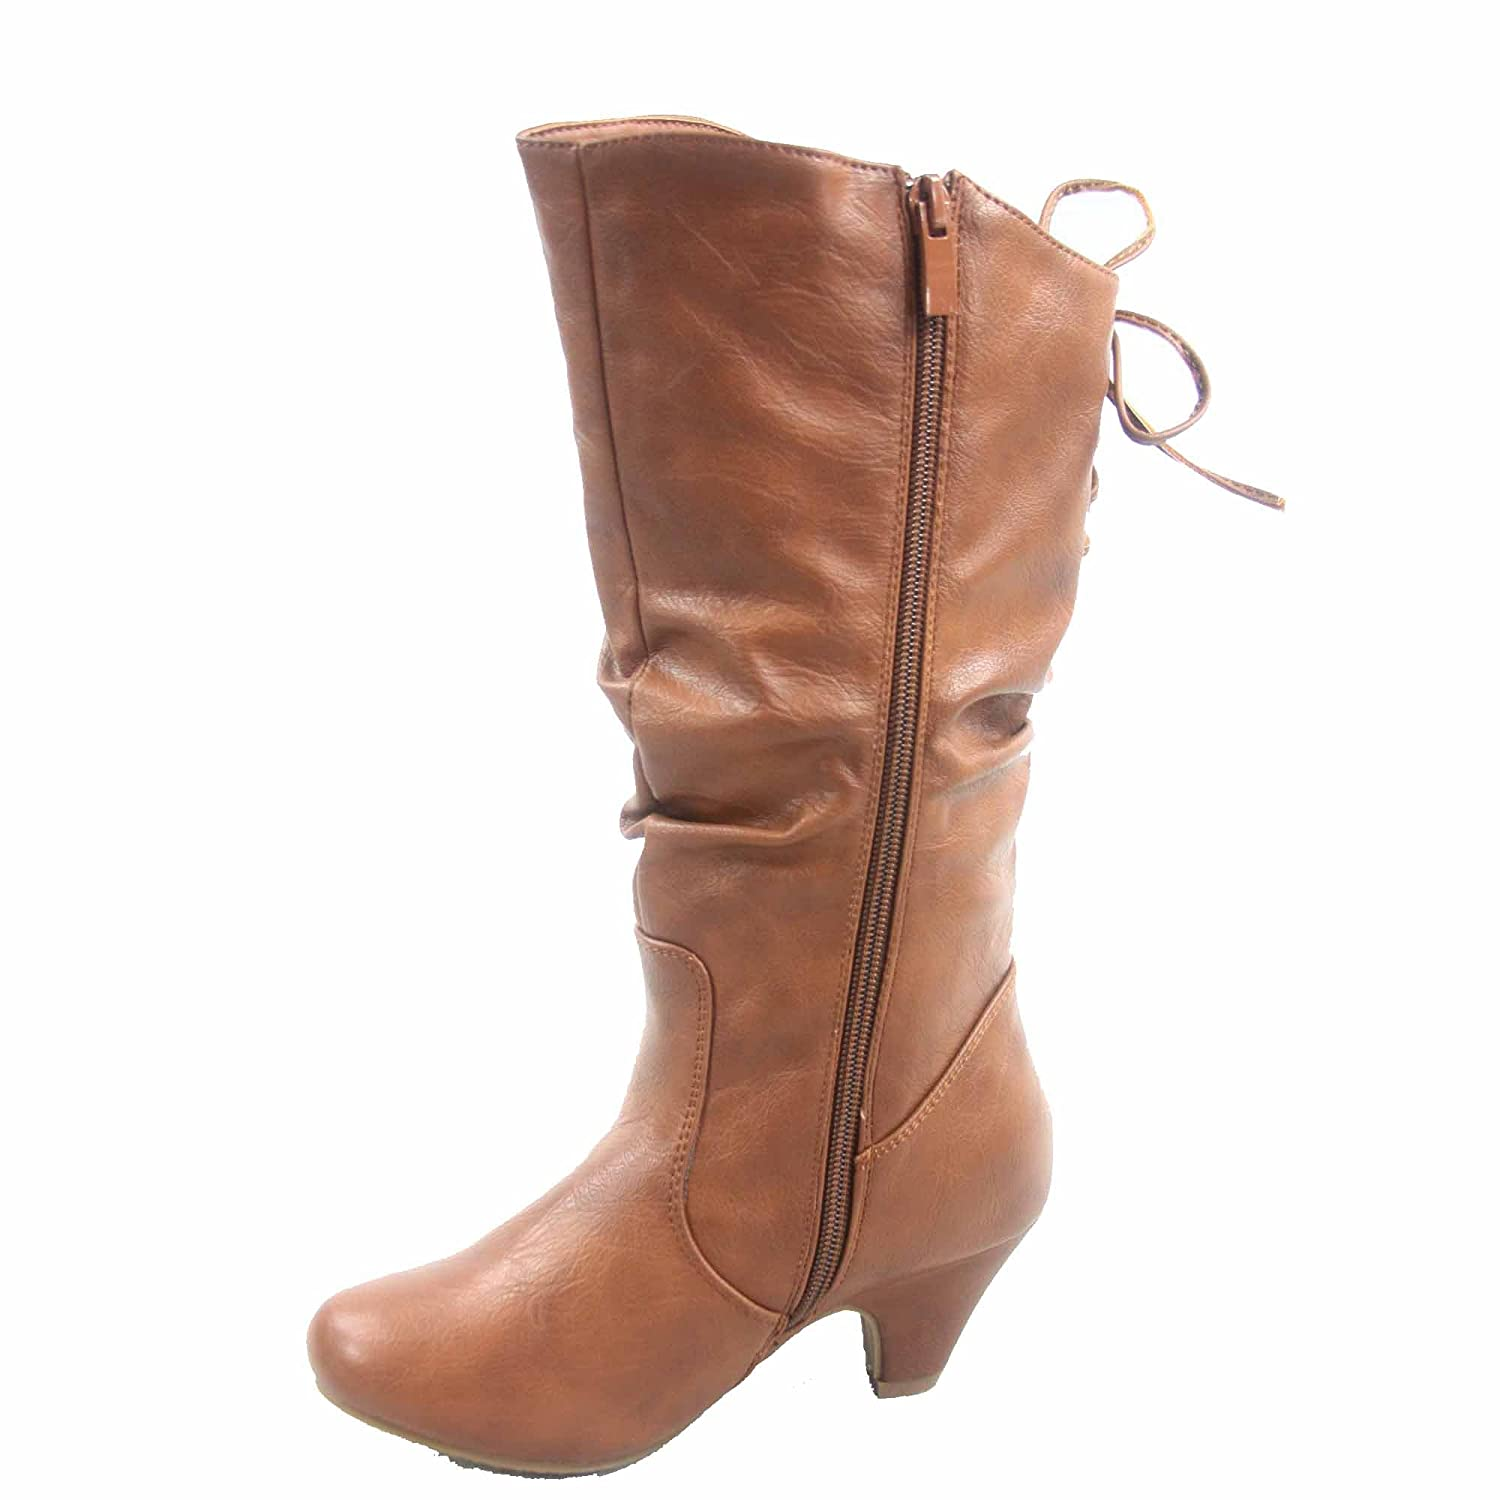 Win-40k Girls Youth Fashion Round Toe Low Heel Slouch Half Back Lace Zipper Boots Shoes